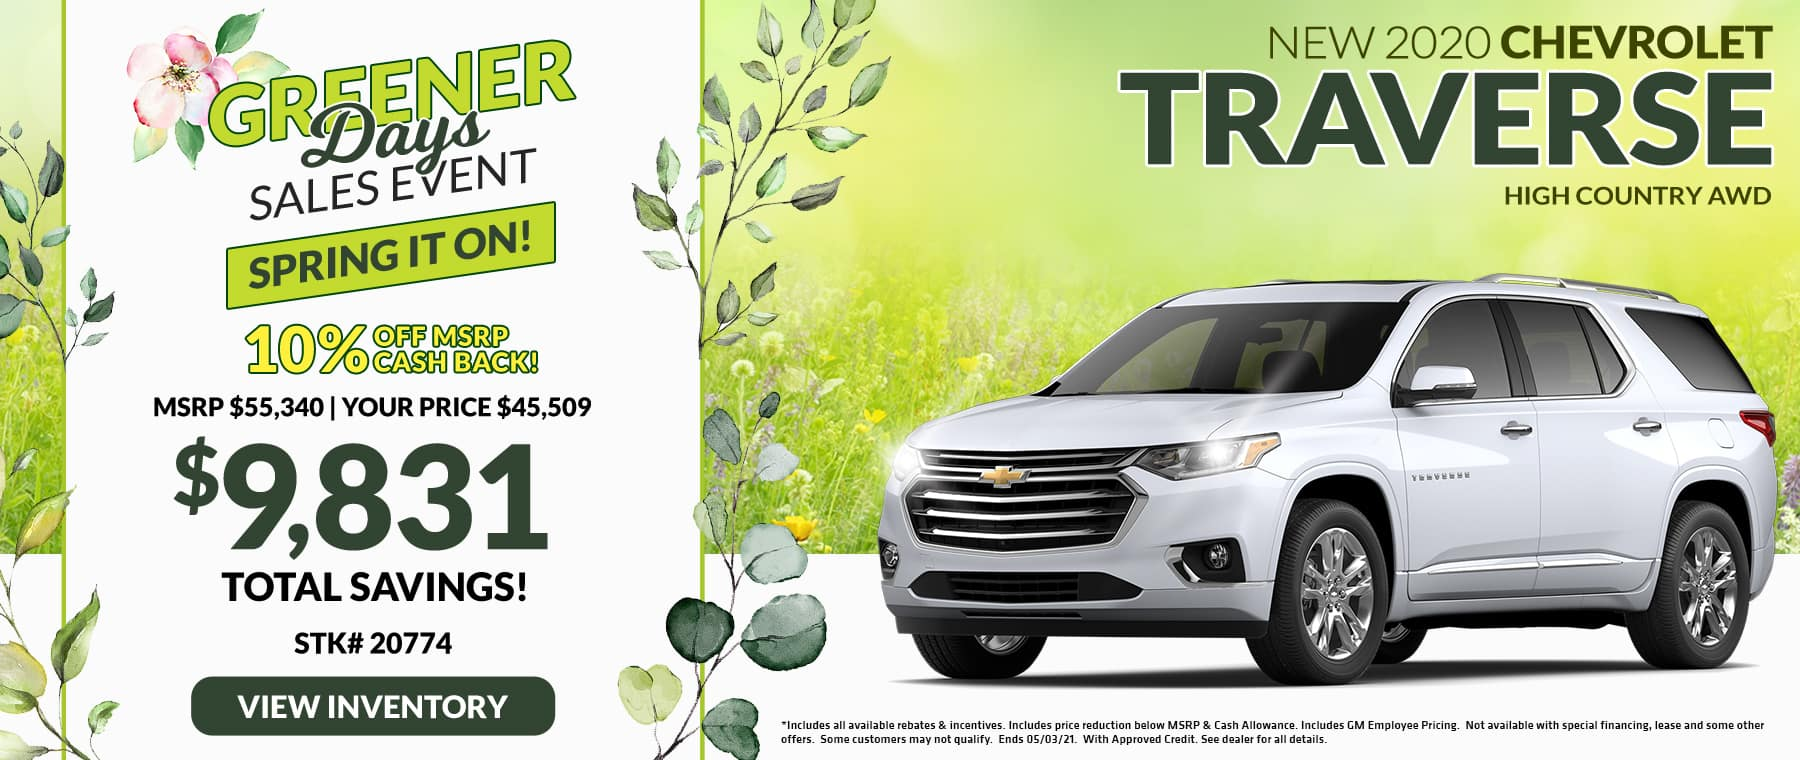 New 2020 Chevrolet Traverse High Country AWD